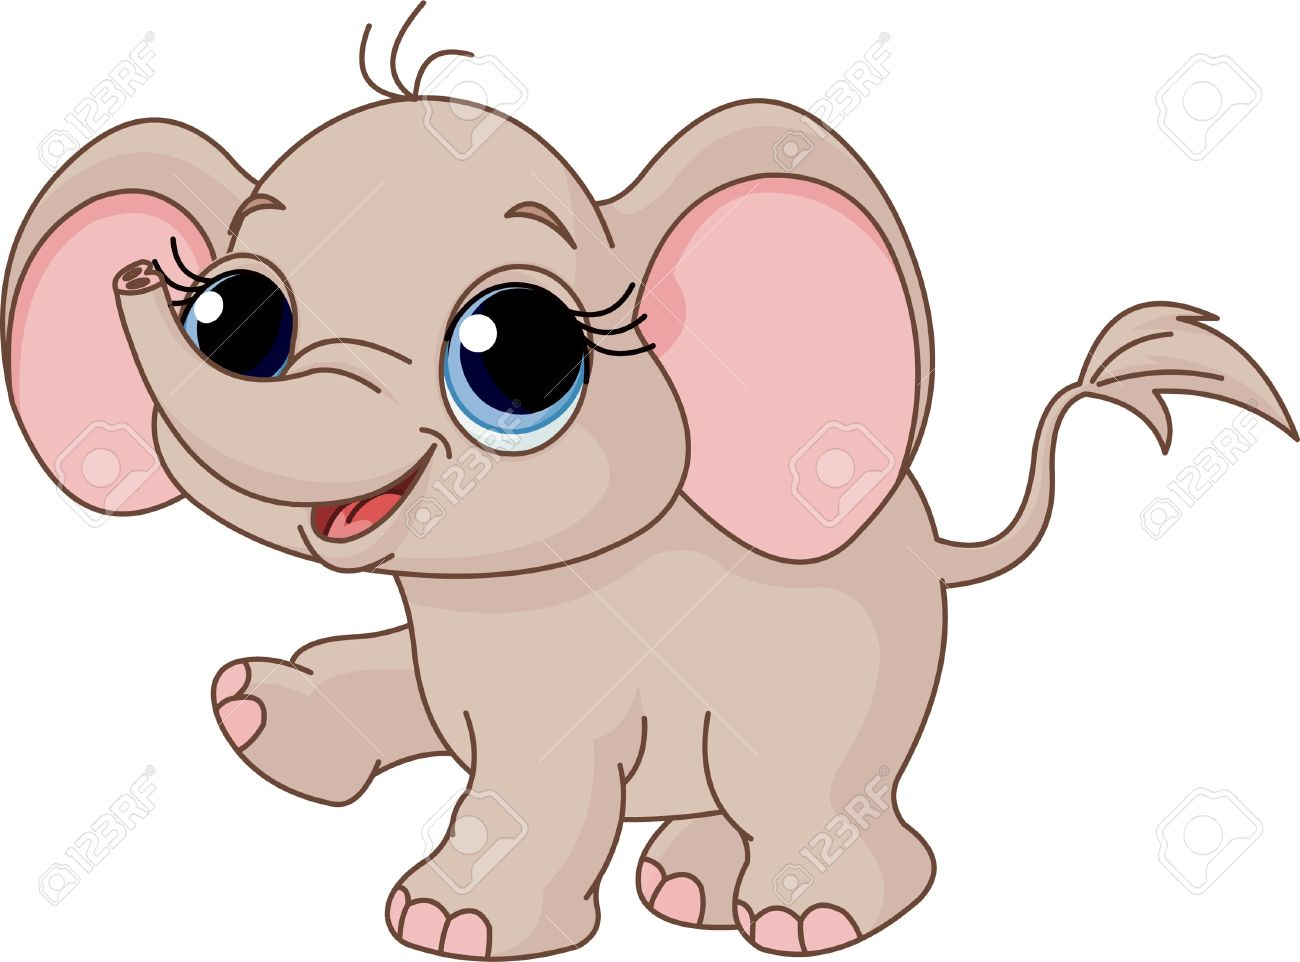 Illustration of Cute and funny baby elephant Stock Vector - 7911695